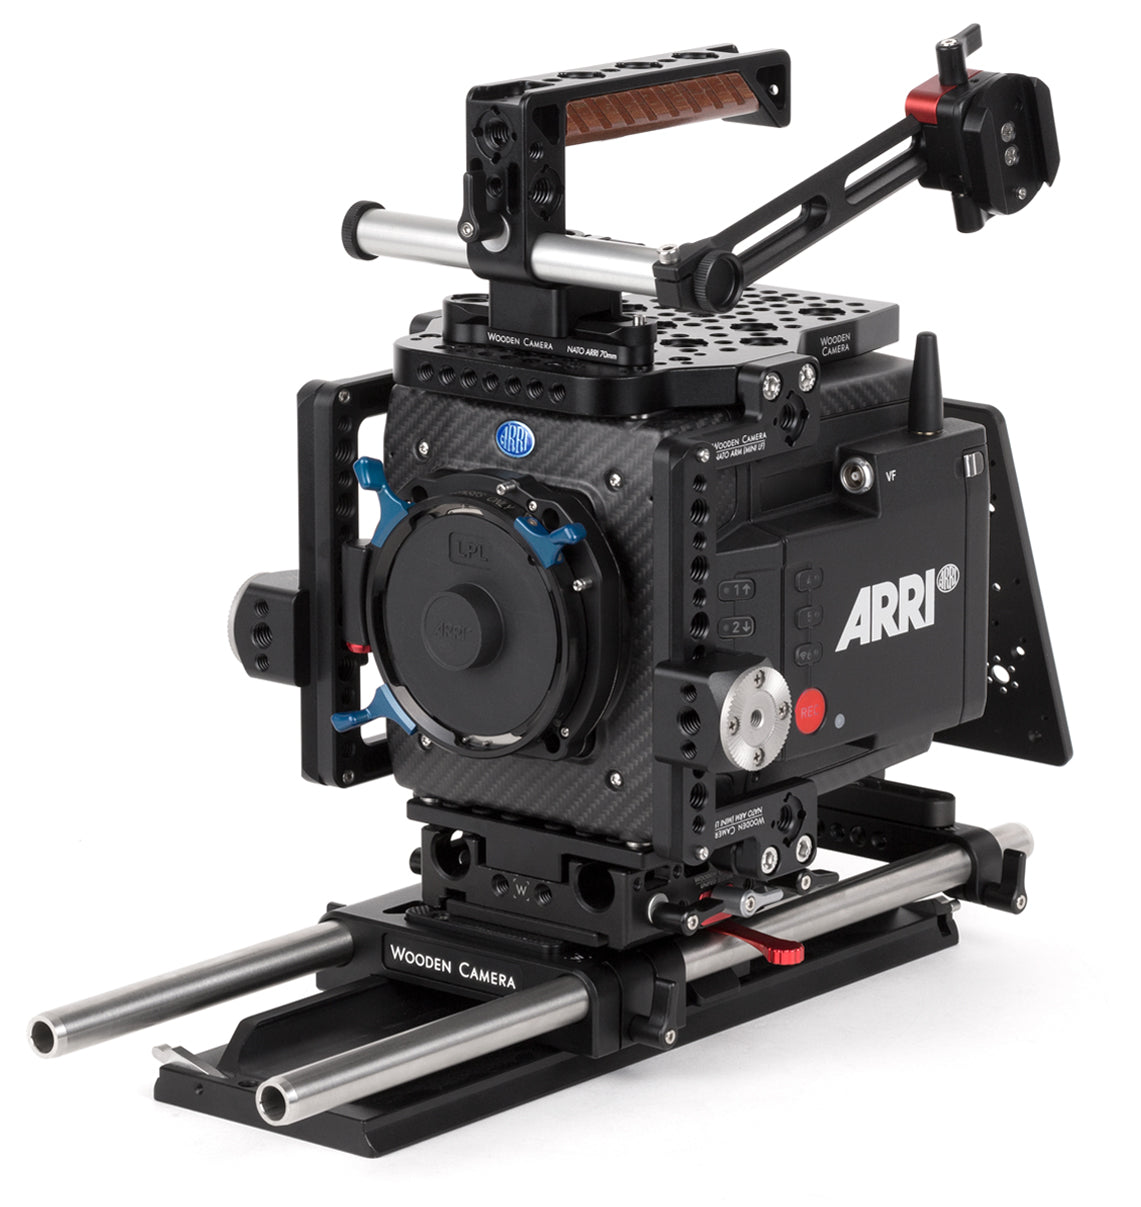 professional 15mm studio arri alexa mini lf camera support kit & accessories from wooden camera